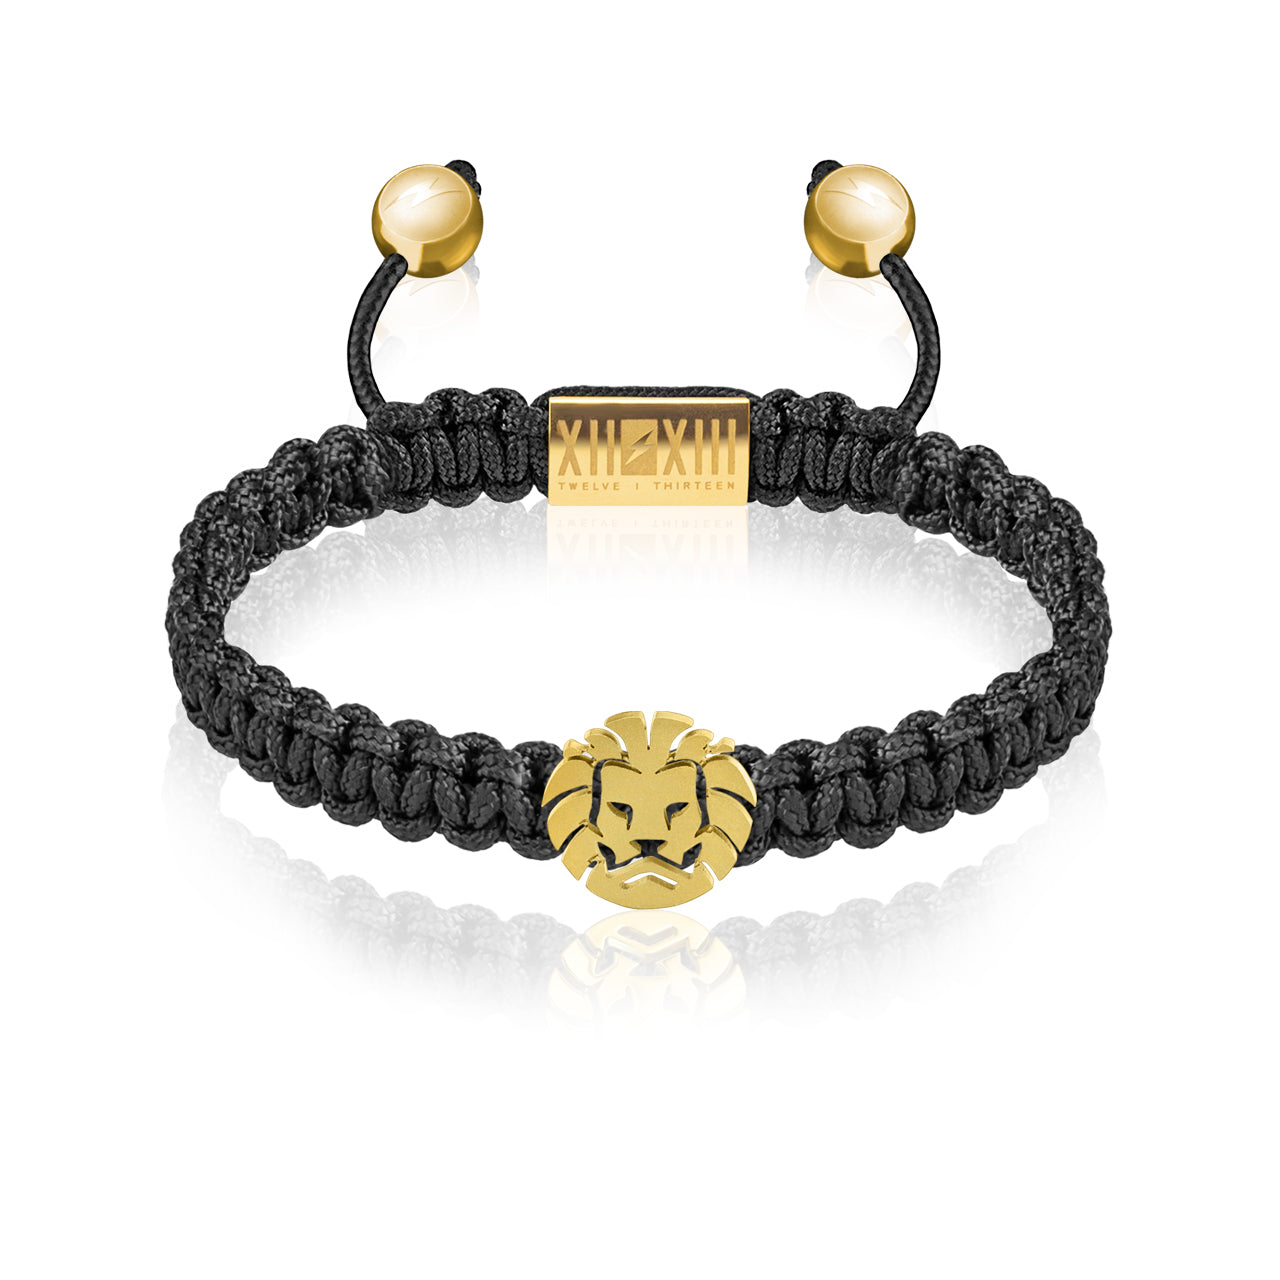 WATCHANISH by Twelve Thirteen Jewelry macramé braided bracelet - Black/Matte Yellow Gold